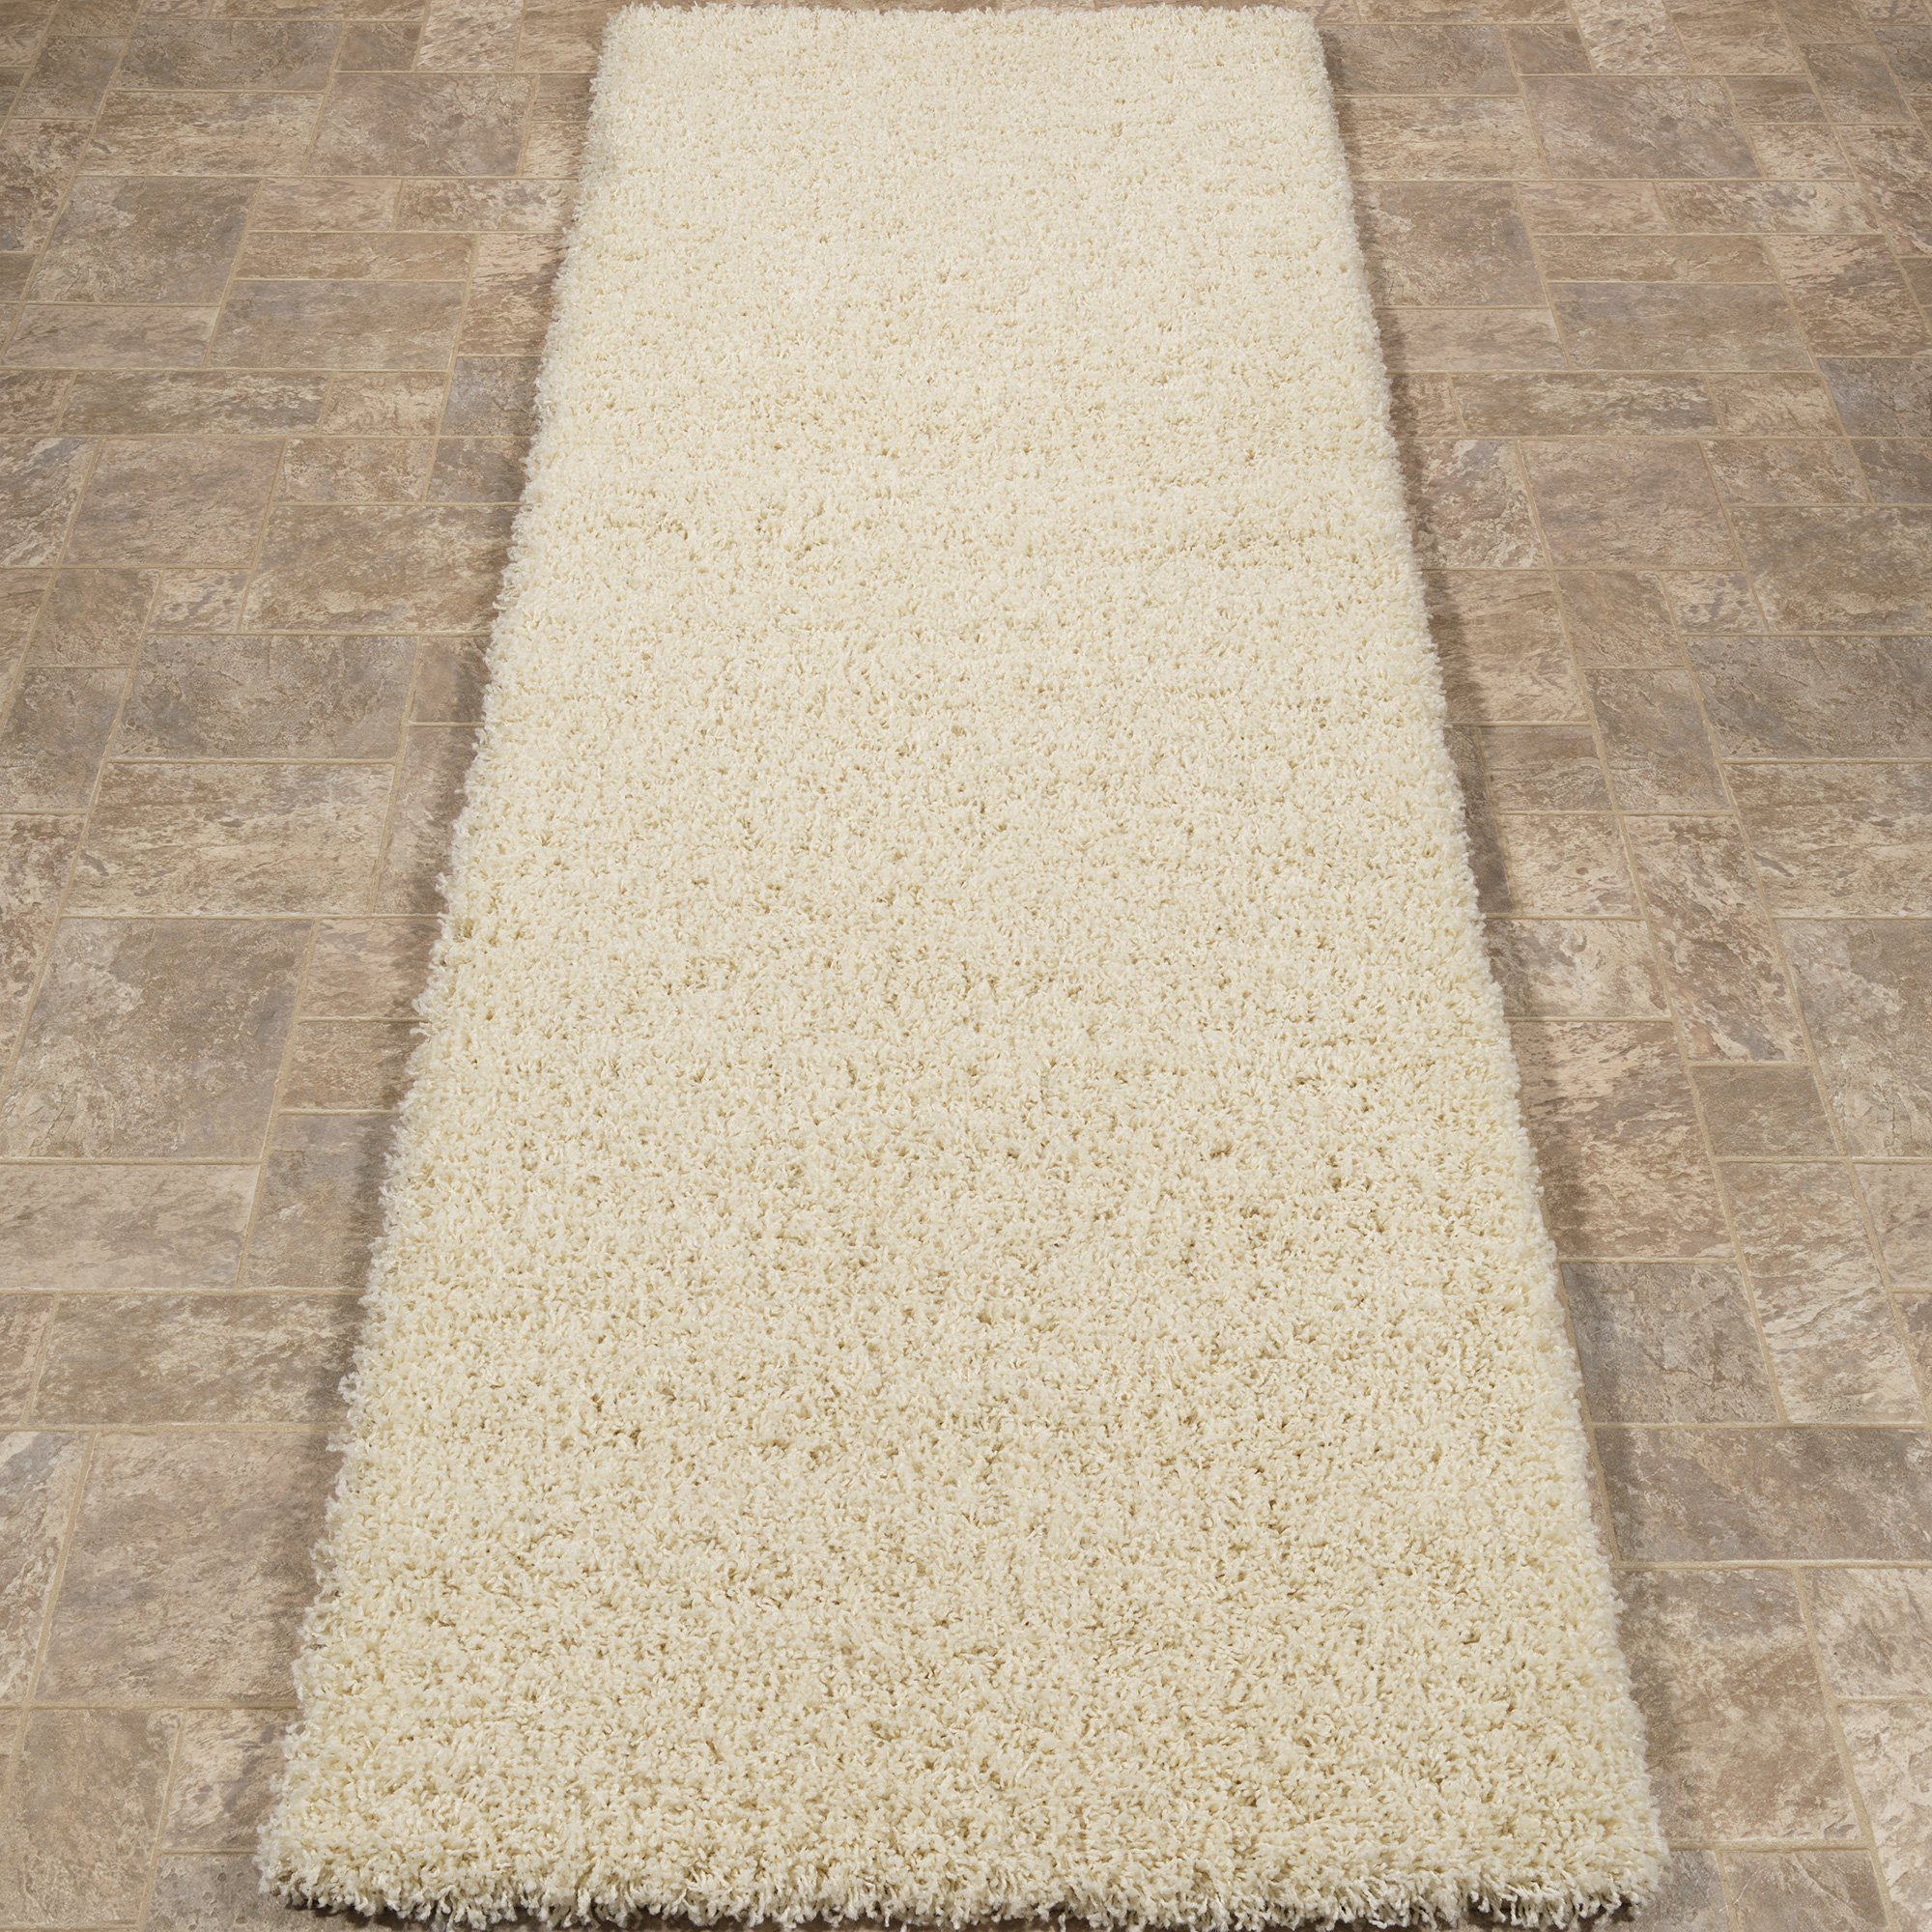 Cozy Shag Collection Cream Solid Shag Rug (2'7''X7'6'') Contemporary Living and Bedroom Soft Shaggy Runner Rug